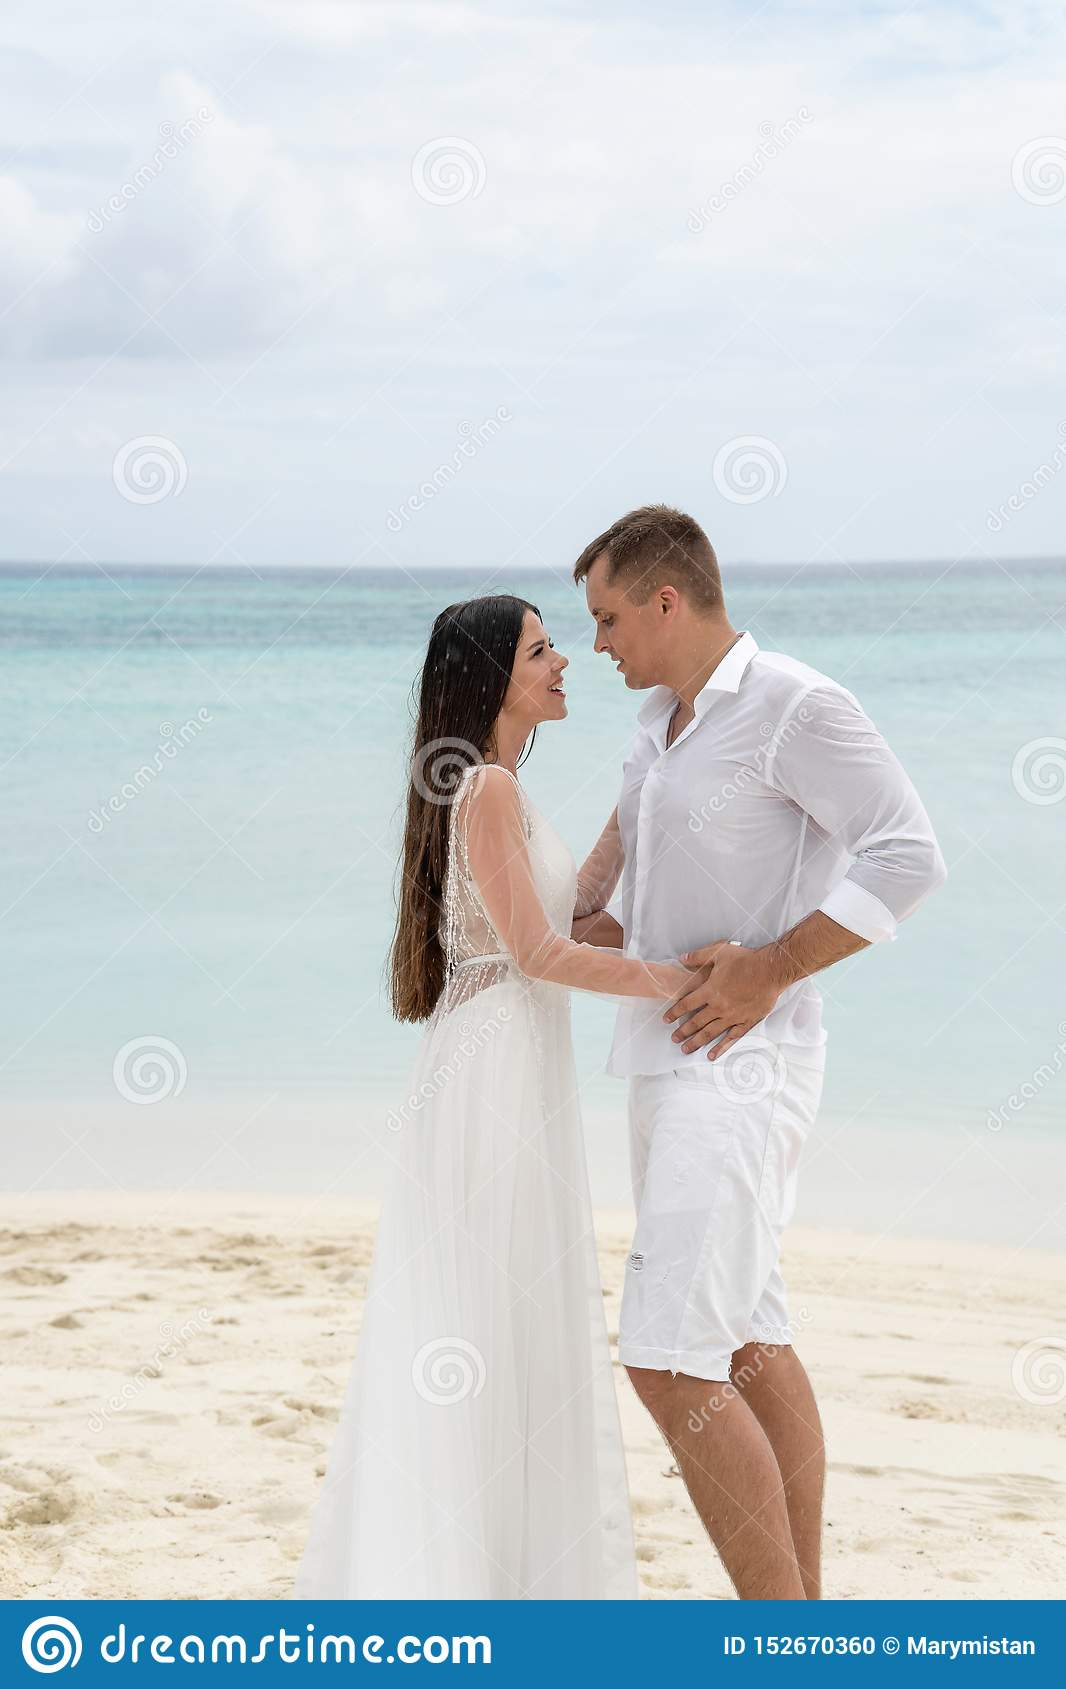 Newlyweds are hugging on a gorgeous beach with white sand and turquoise water